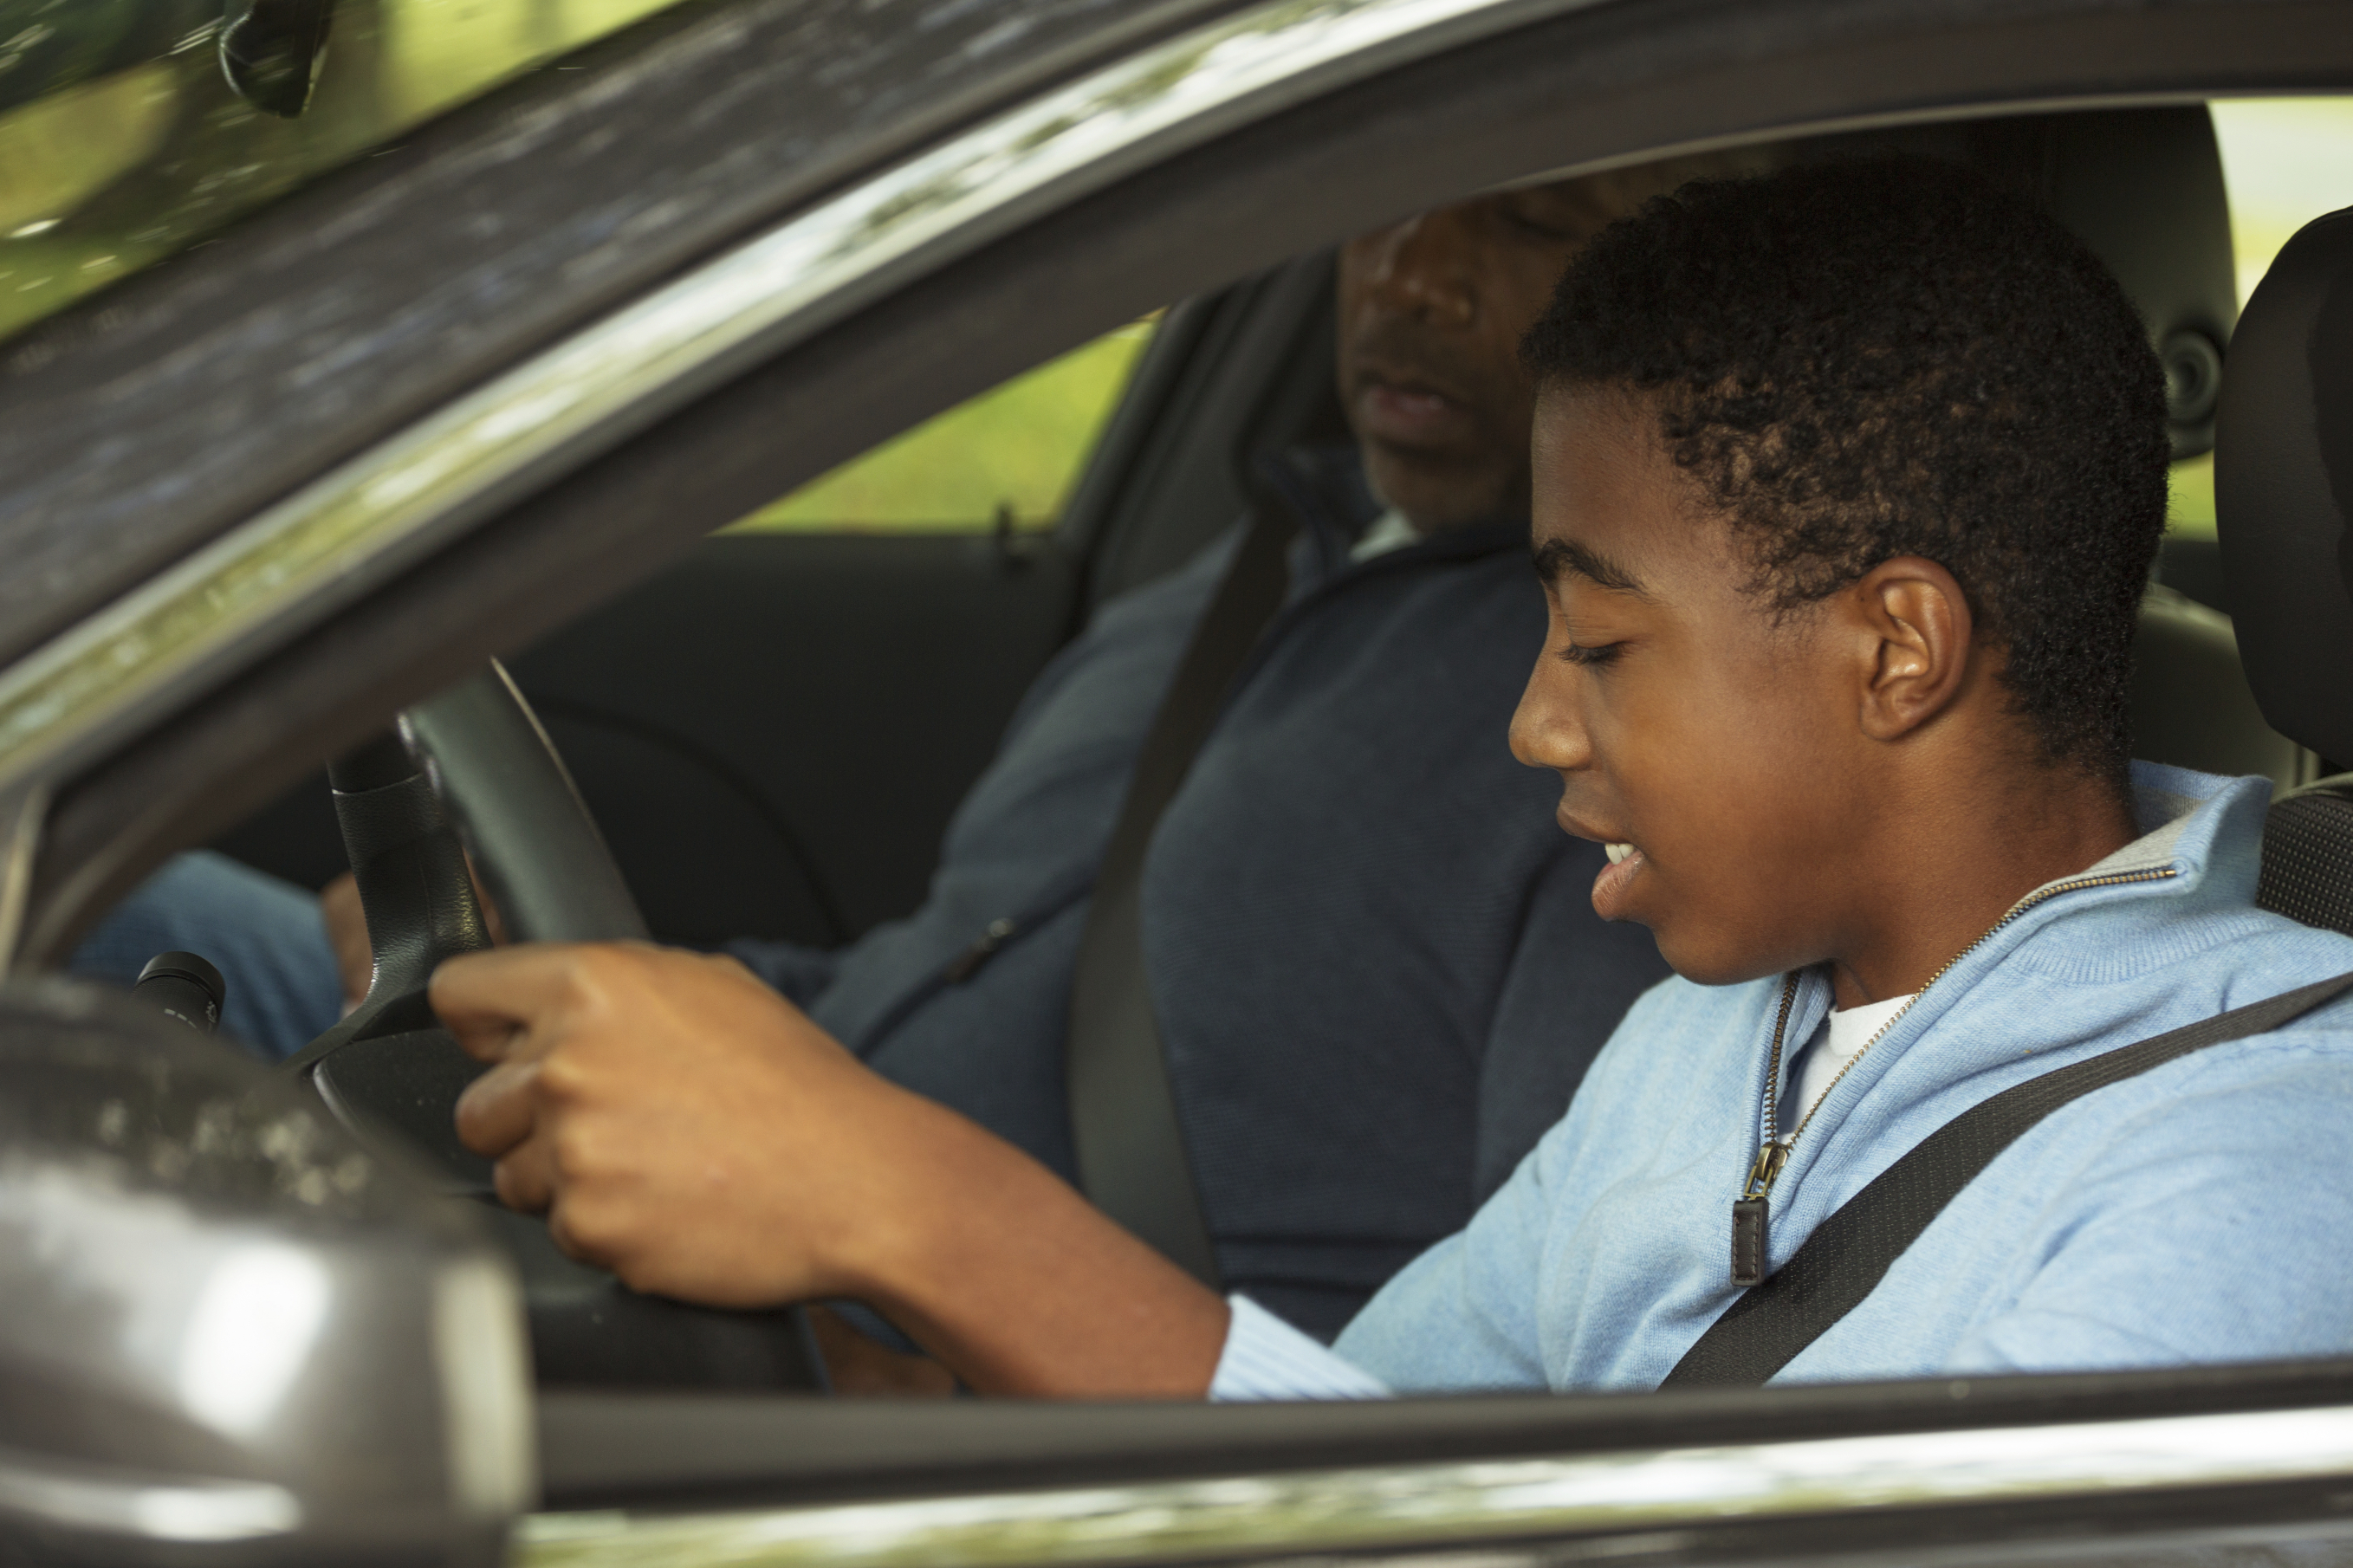 Teen Drivers: Get the Facts